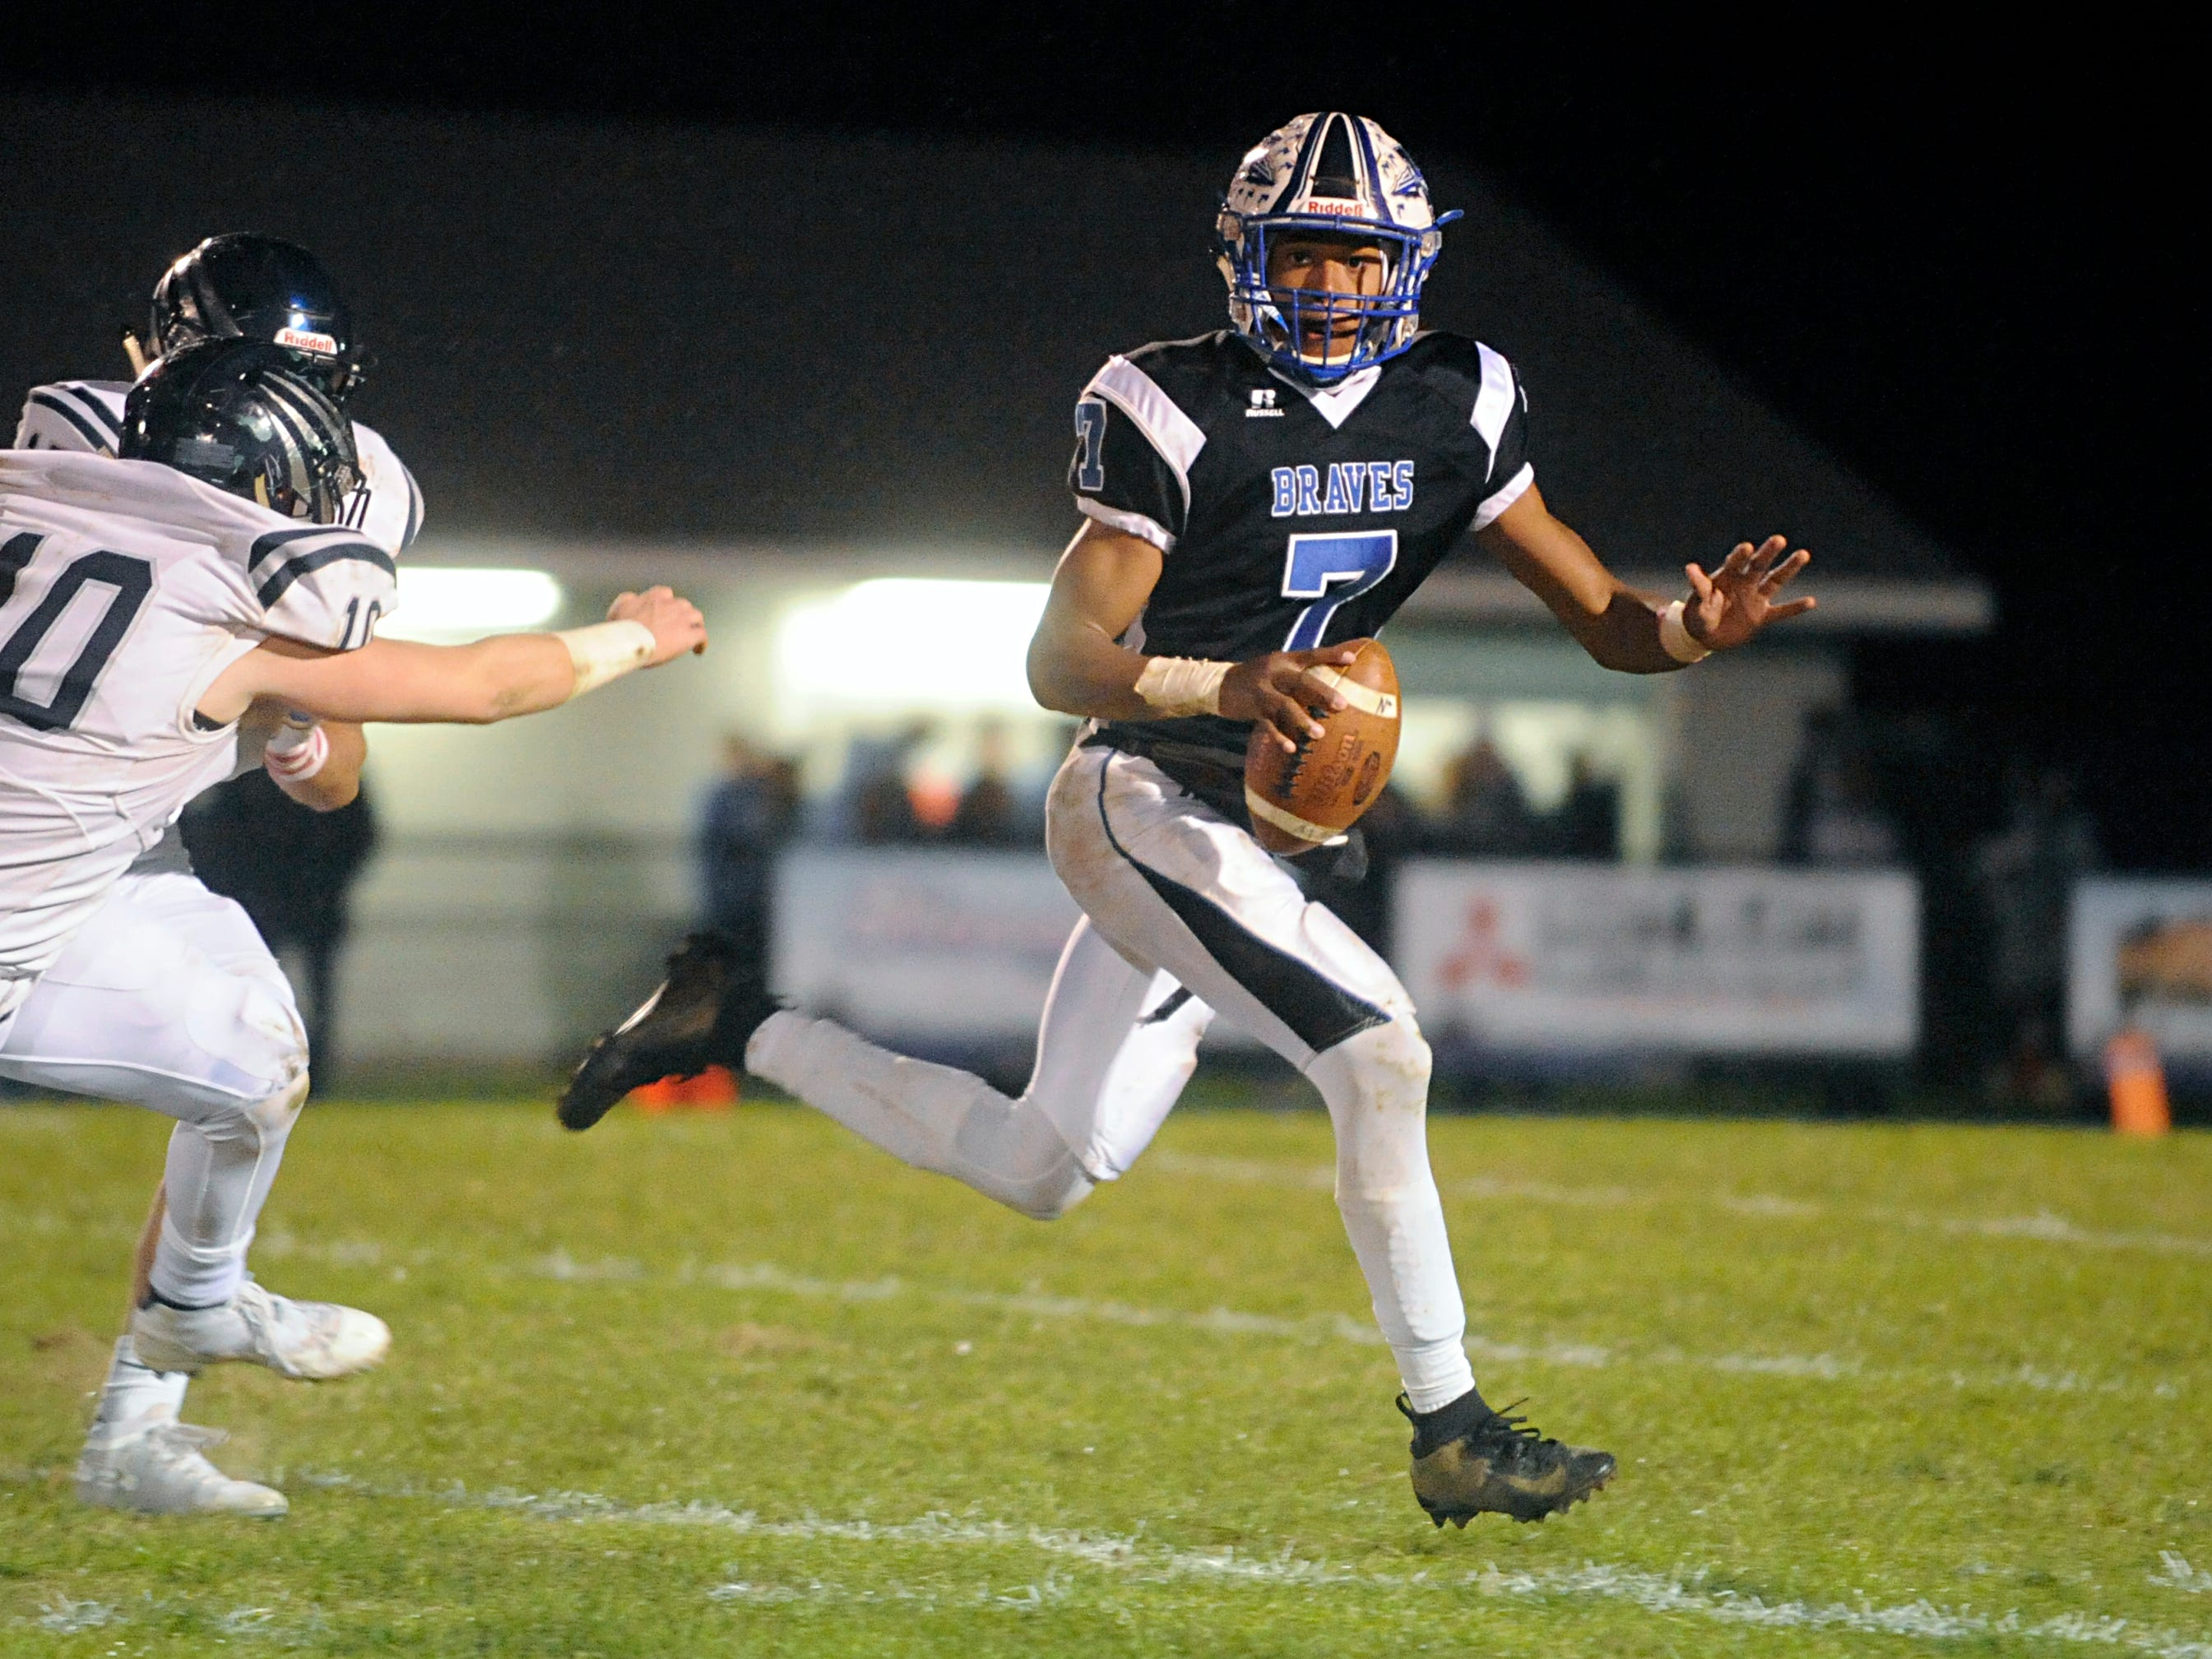 Williamstown QB, Jonathan Collins looks for a open receiver during a game against visiting St. Augustine. The Braves topped the Hermits, 14-7, on Friday, October 26, 2018.